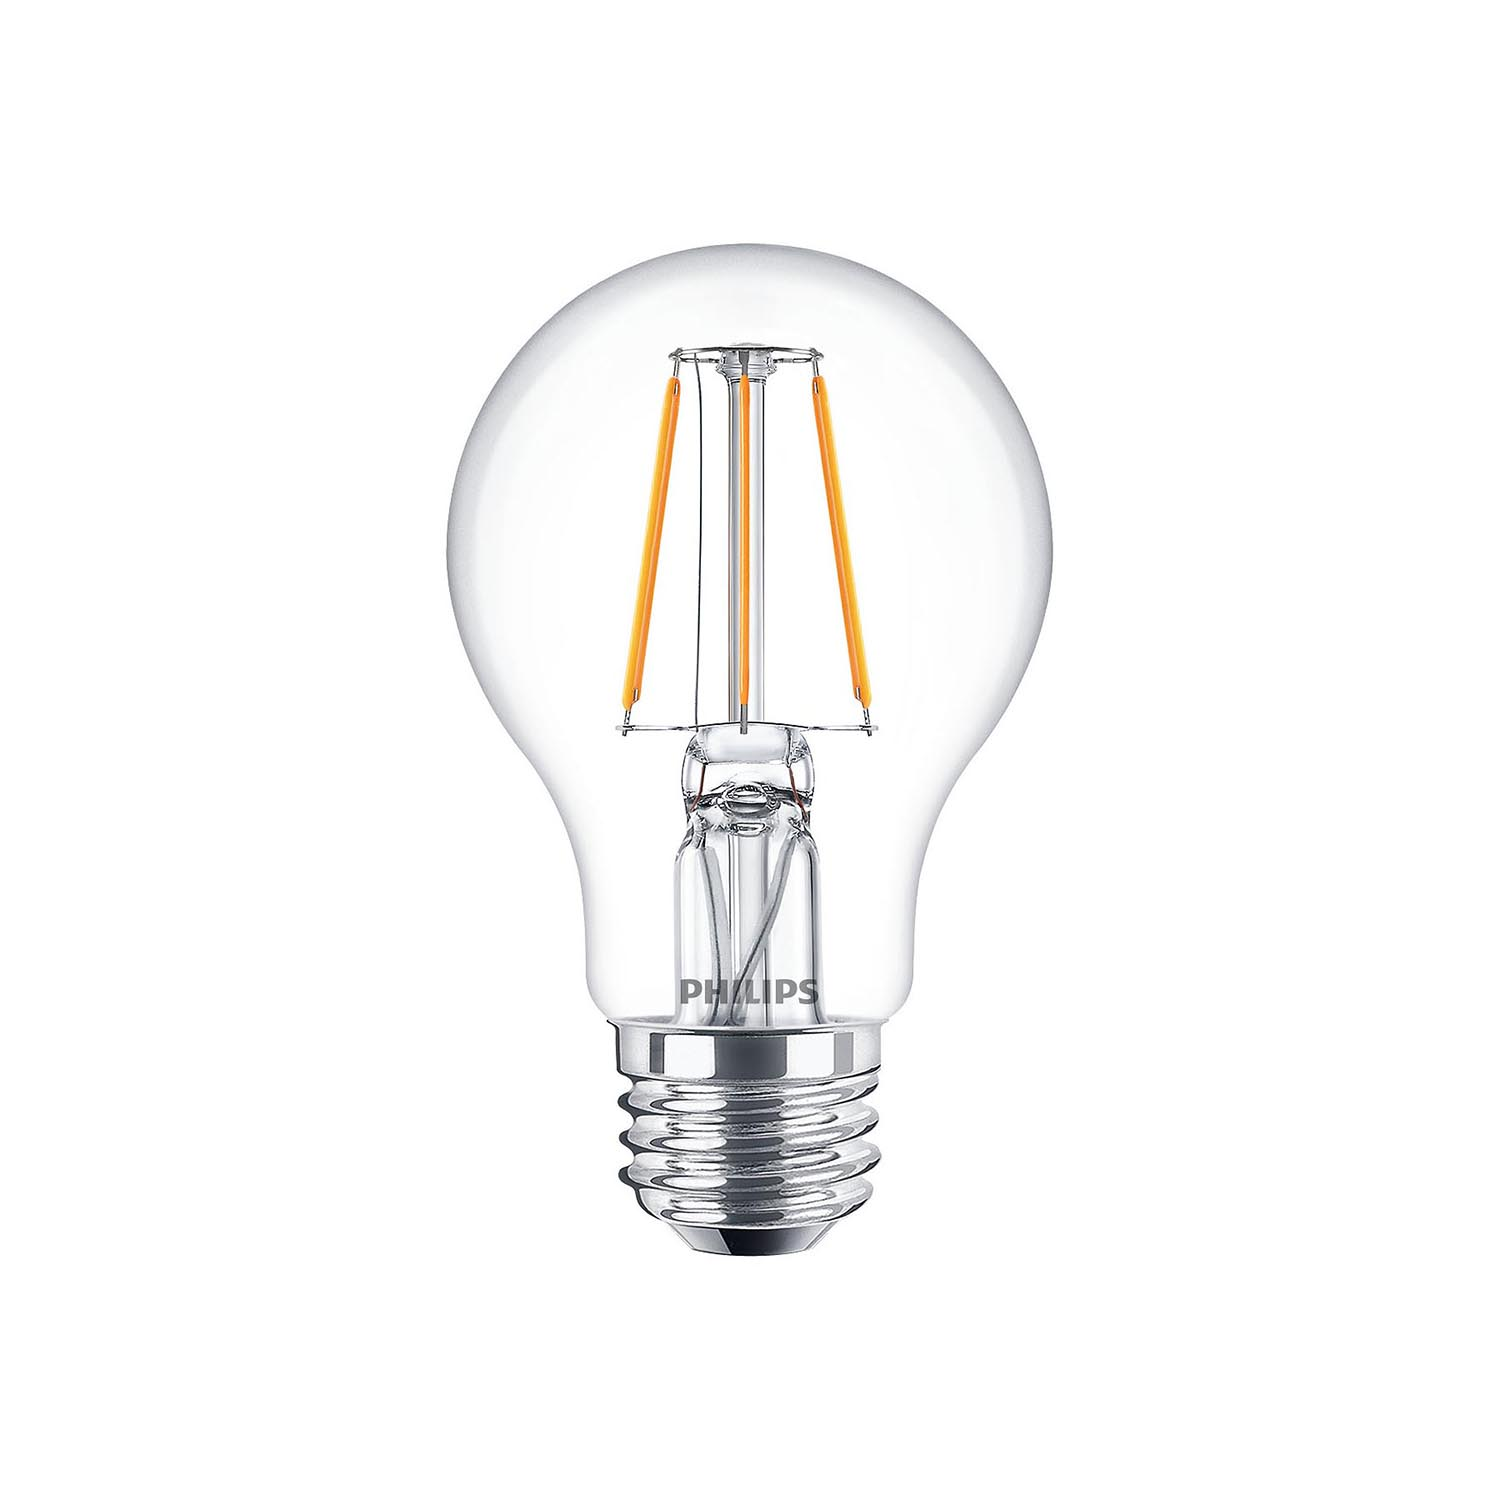 philips led filament bulb clear a60 e27 4w 2700k. Black Bedroom Furniture Sets. Home Design Ideas